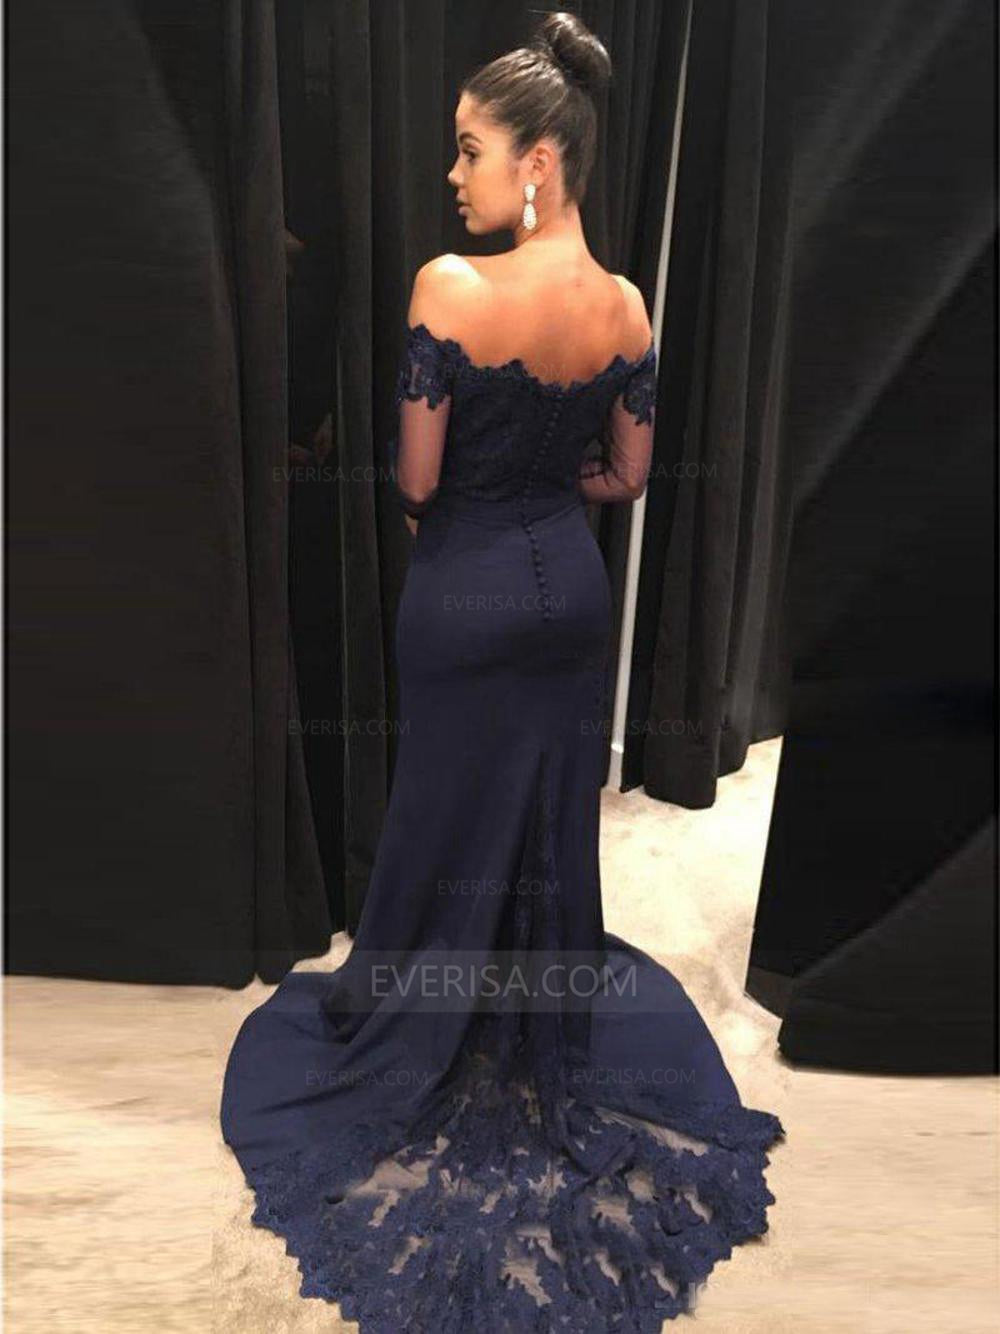 93cec3299d4f Sexy Long Sleeves Open Back Mermaid Evening Dresses Long Prom Dresses -  EVERISA